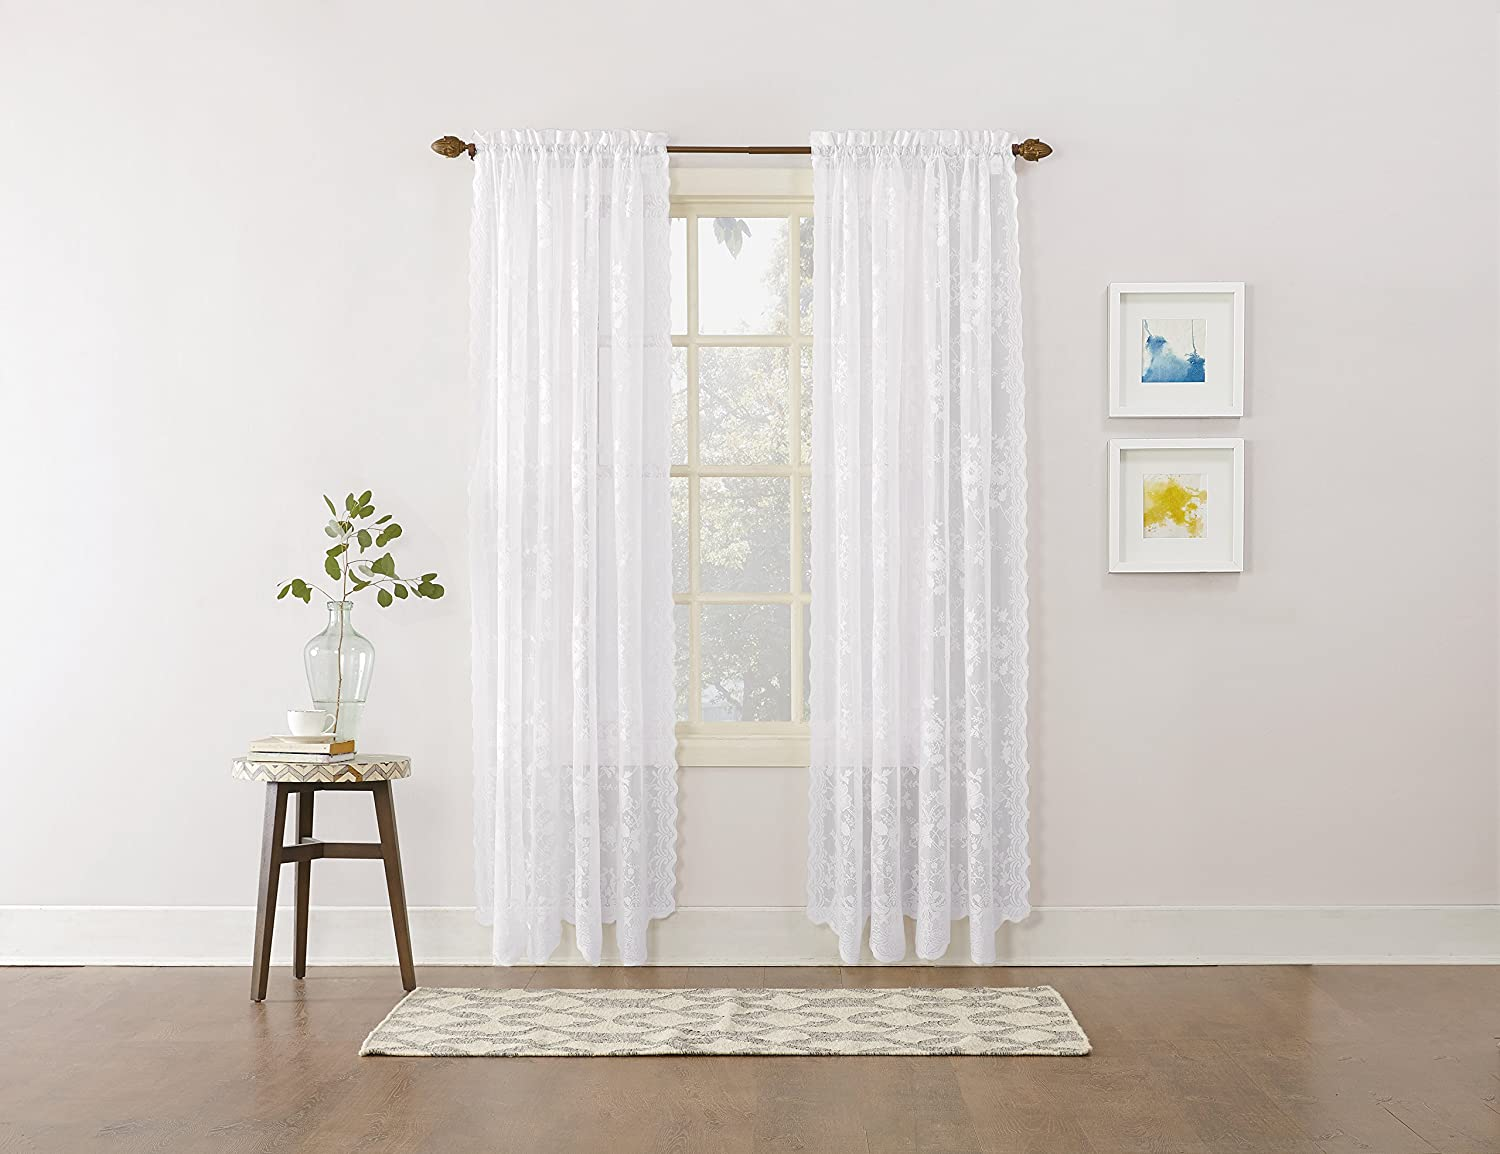 "No. 918 Alison Floral Lace Sheer Rod Pocket Curtain Panel, 58"" x 84"", White"